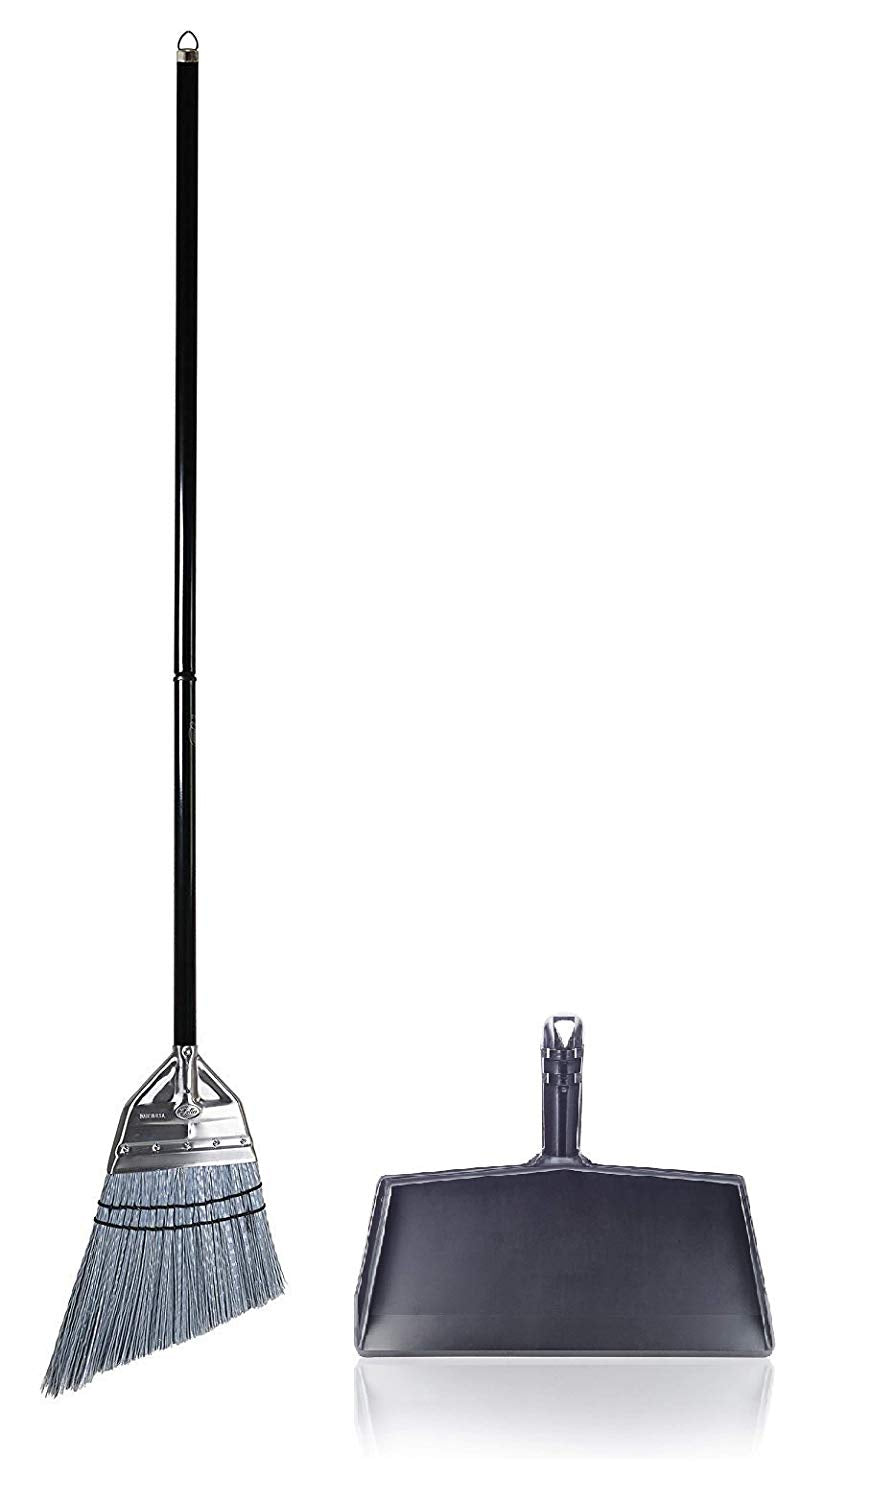 Angle Broom with Clip-On Plastic Dustpan